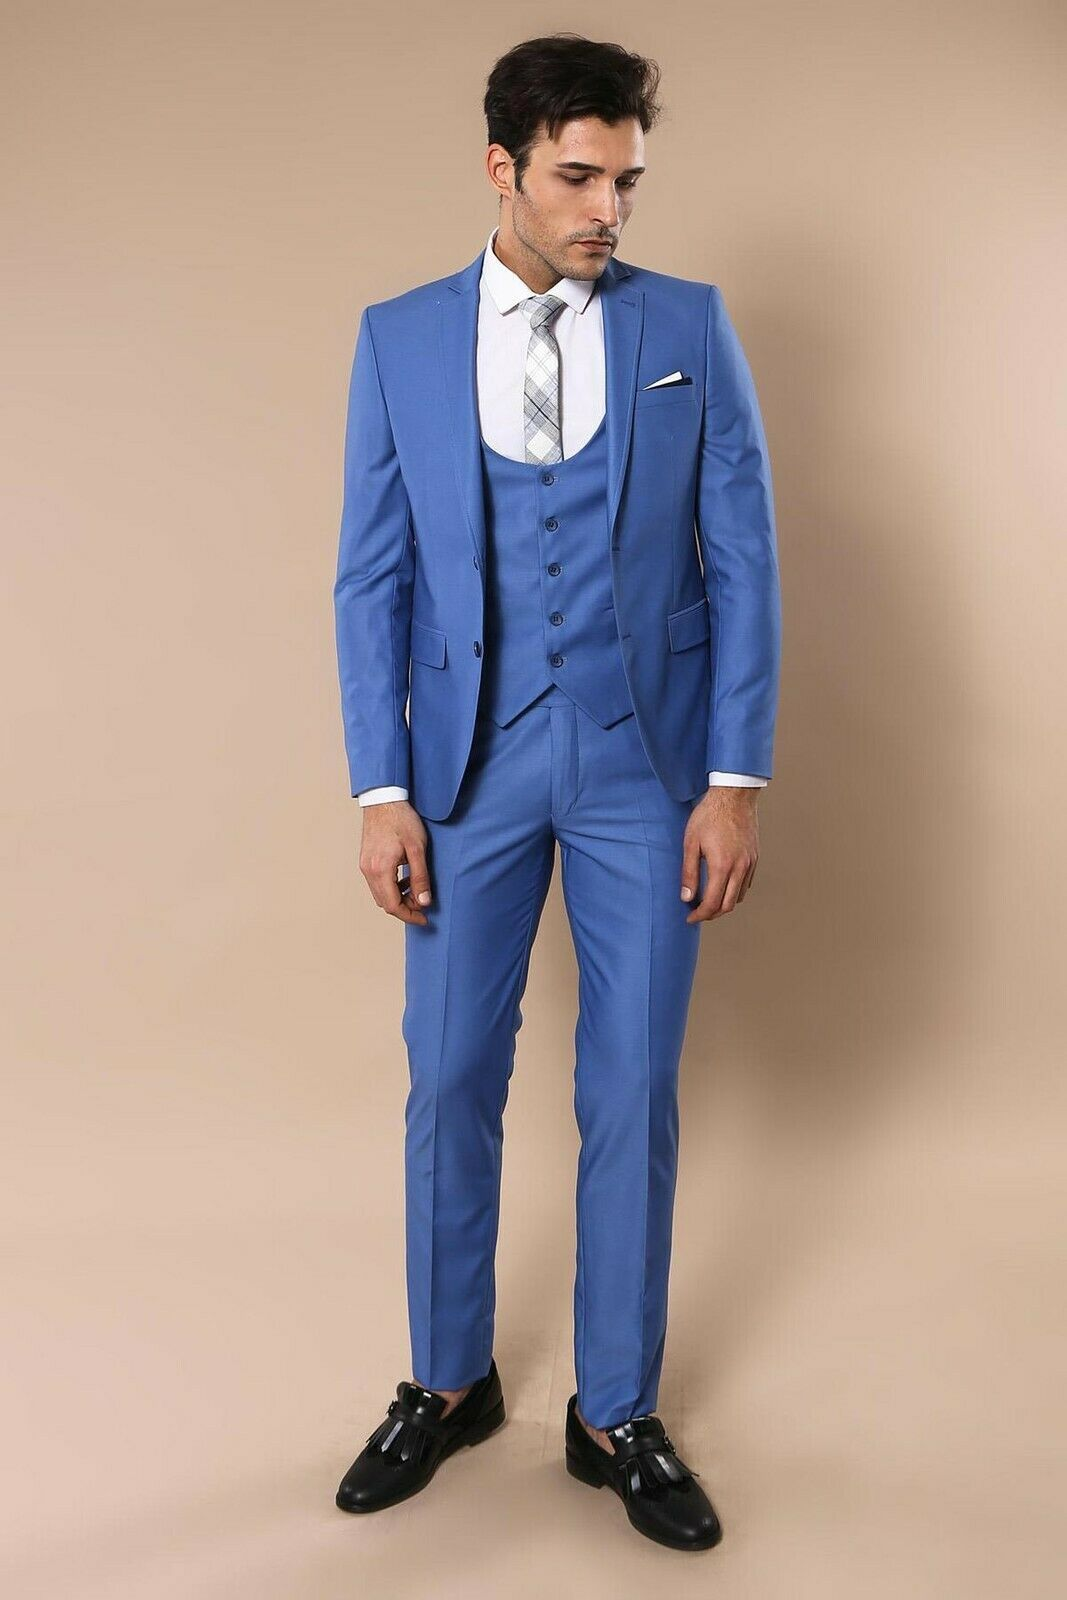 Primary image for Men Three Piece Vested Suit WESSI by J.VALINTIN Extra Slim Fit JV6 Sky Blue 3pc